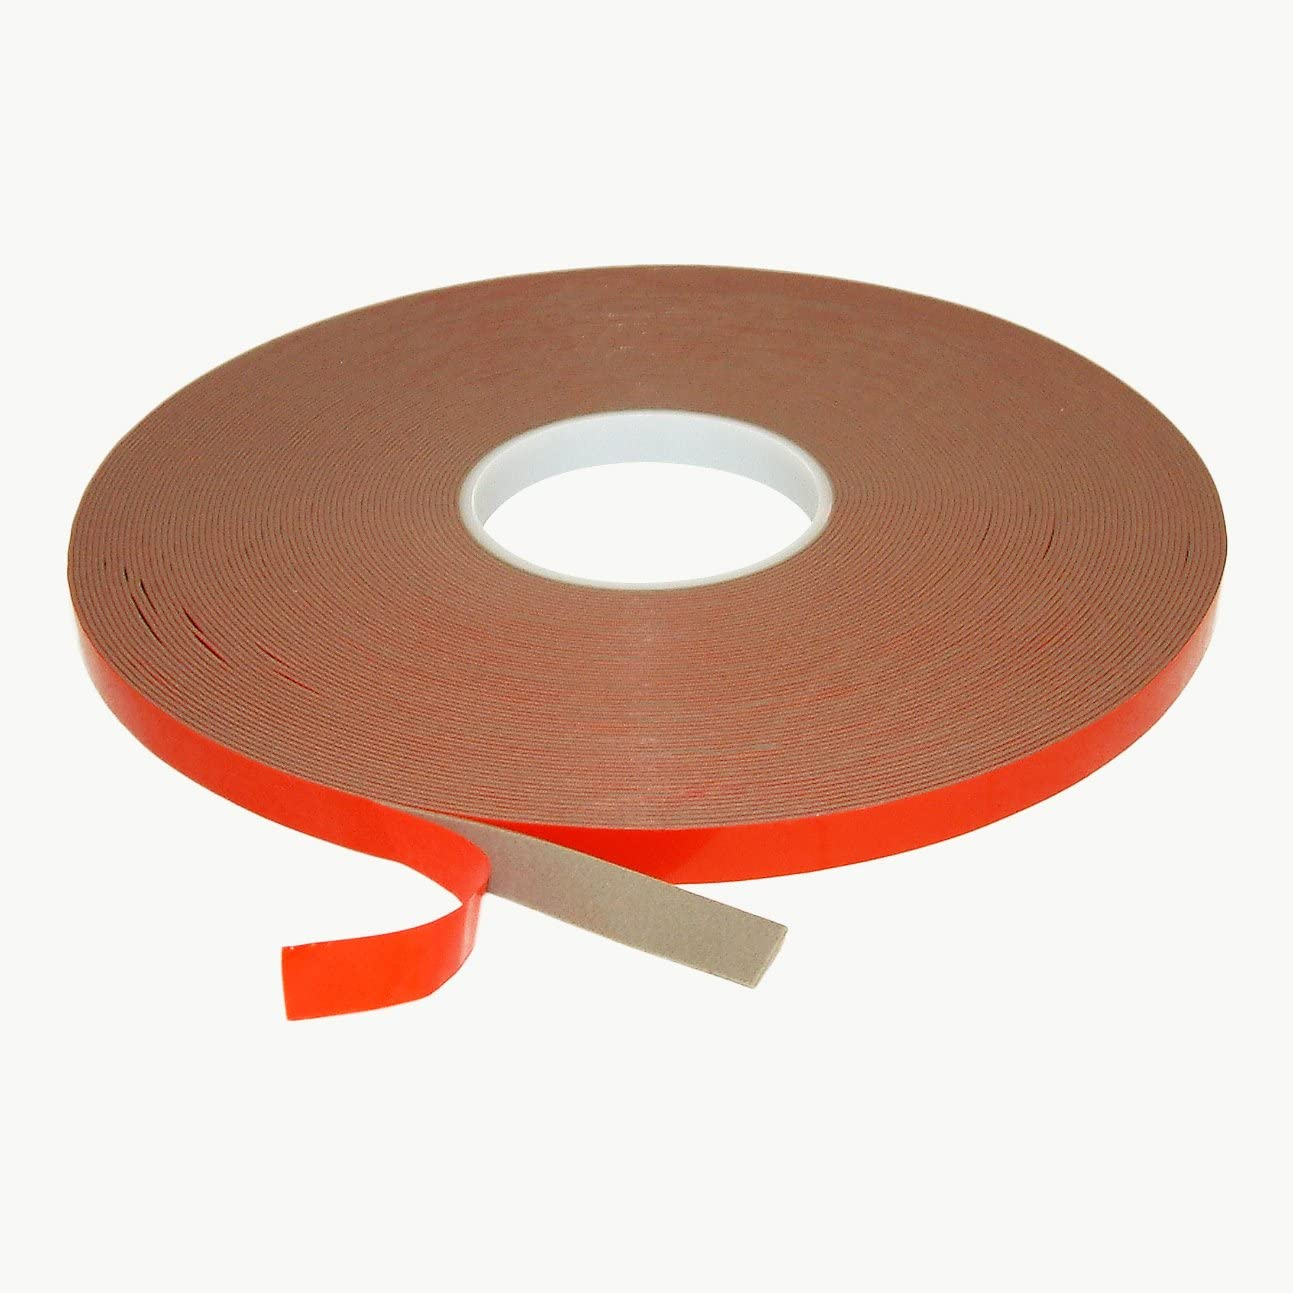 JVCC DC-UHB45FA-G Ultra High Bond Special sale item Foamed Double-Sided Grey Max 72% OFF Tape